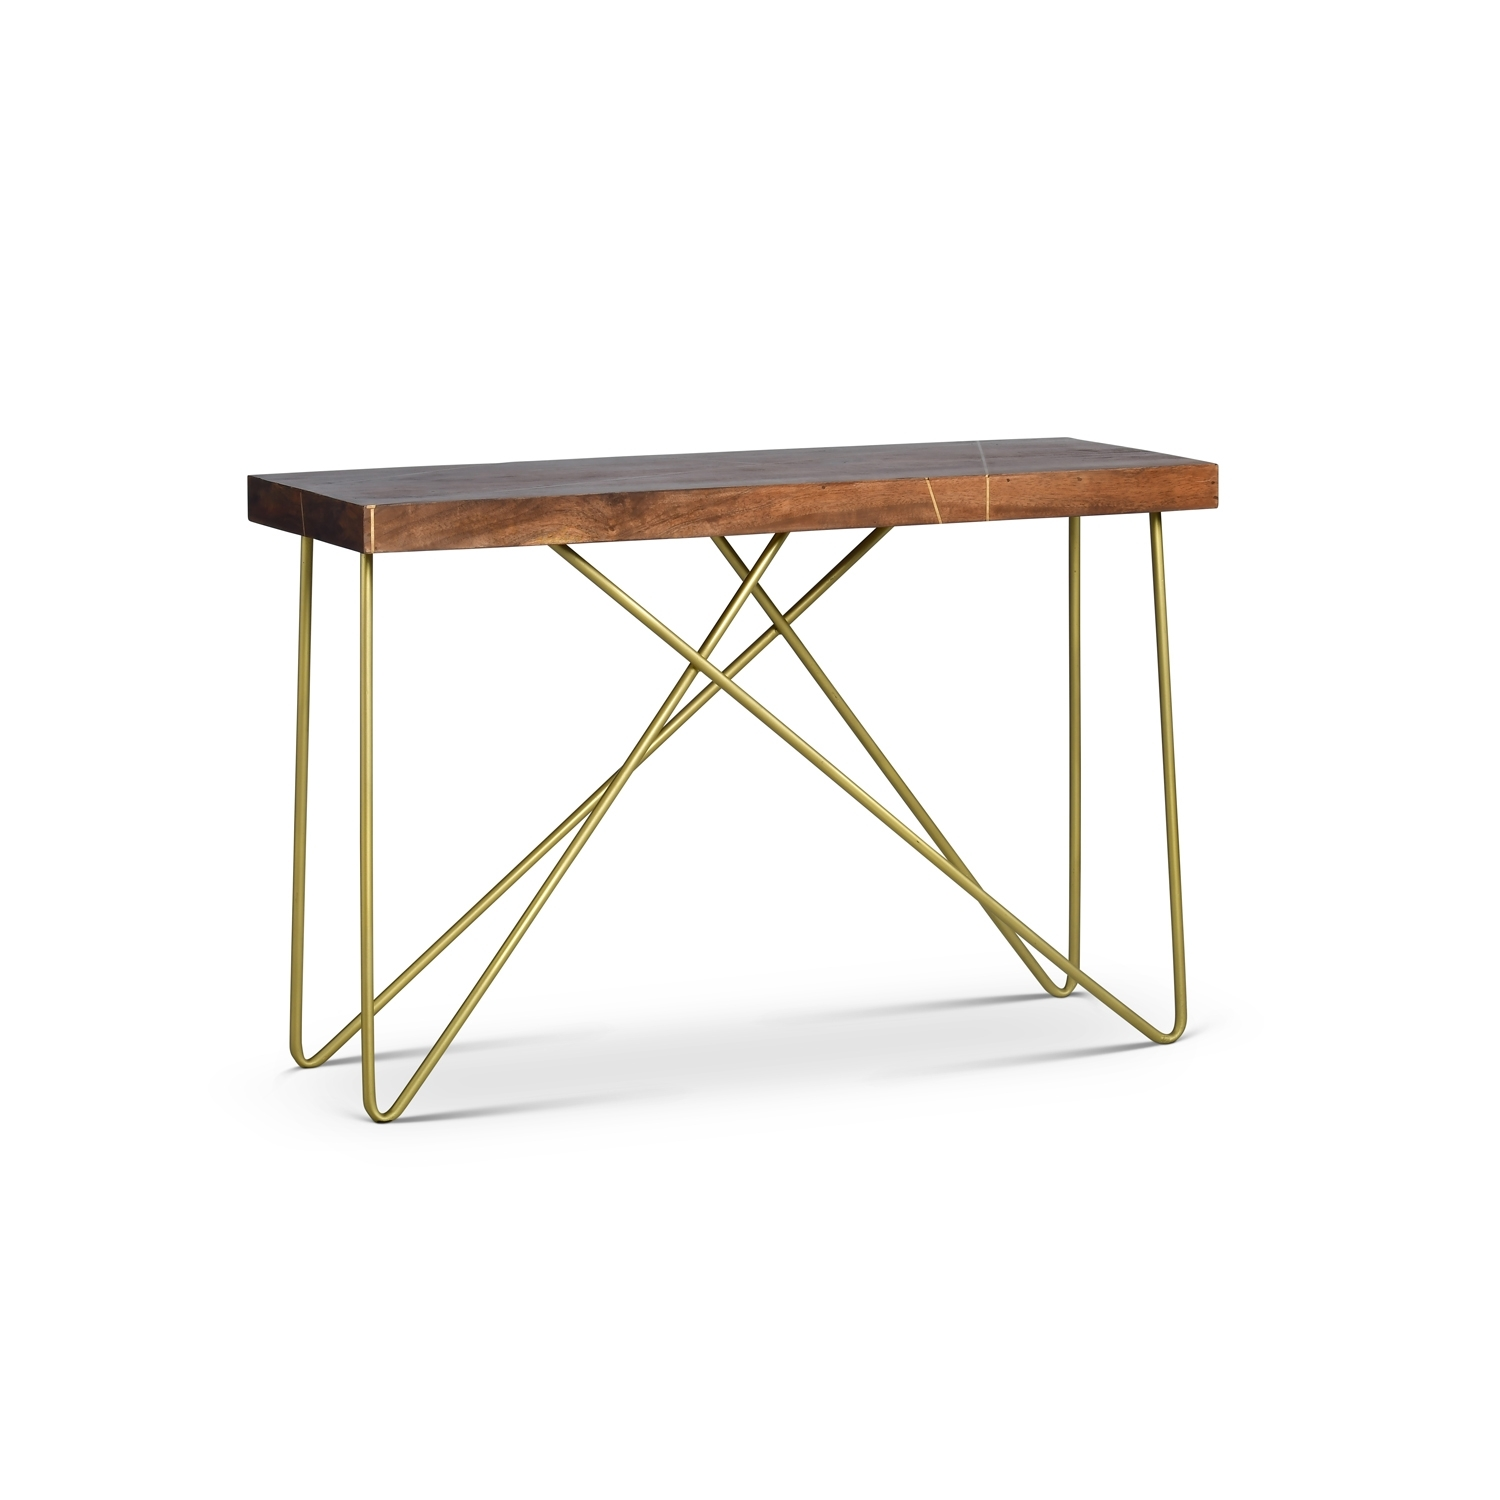 Wyatt Sofa Table In 2018 | Products | Pinterest | Sofa, Table And For Most Current Wyatt 6 Piece Dining Sets With Celler Teal Chairs (Image 20 of 20)